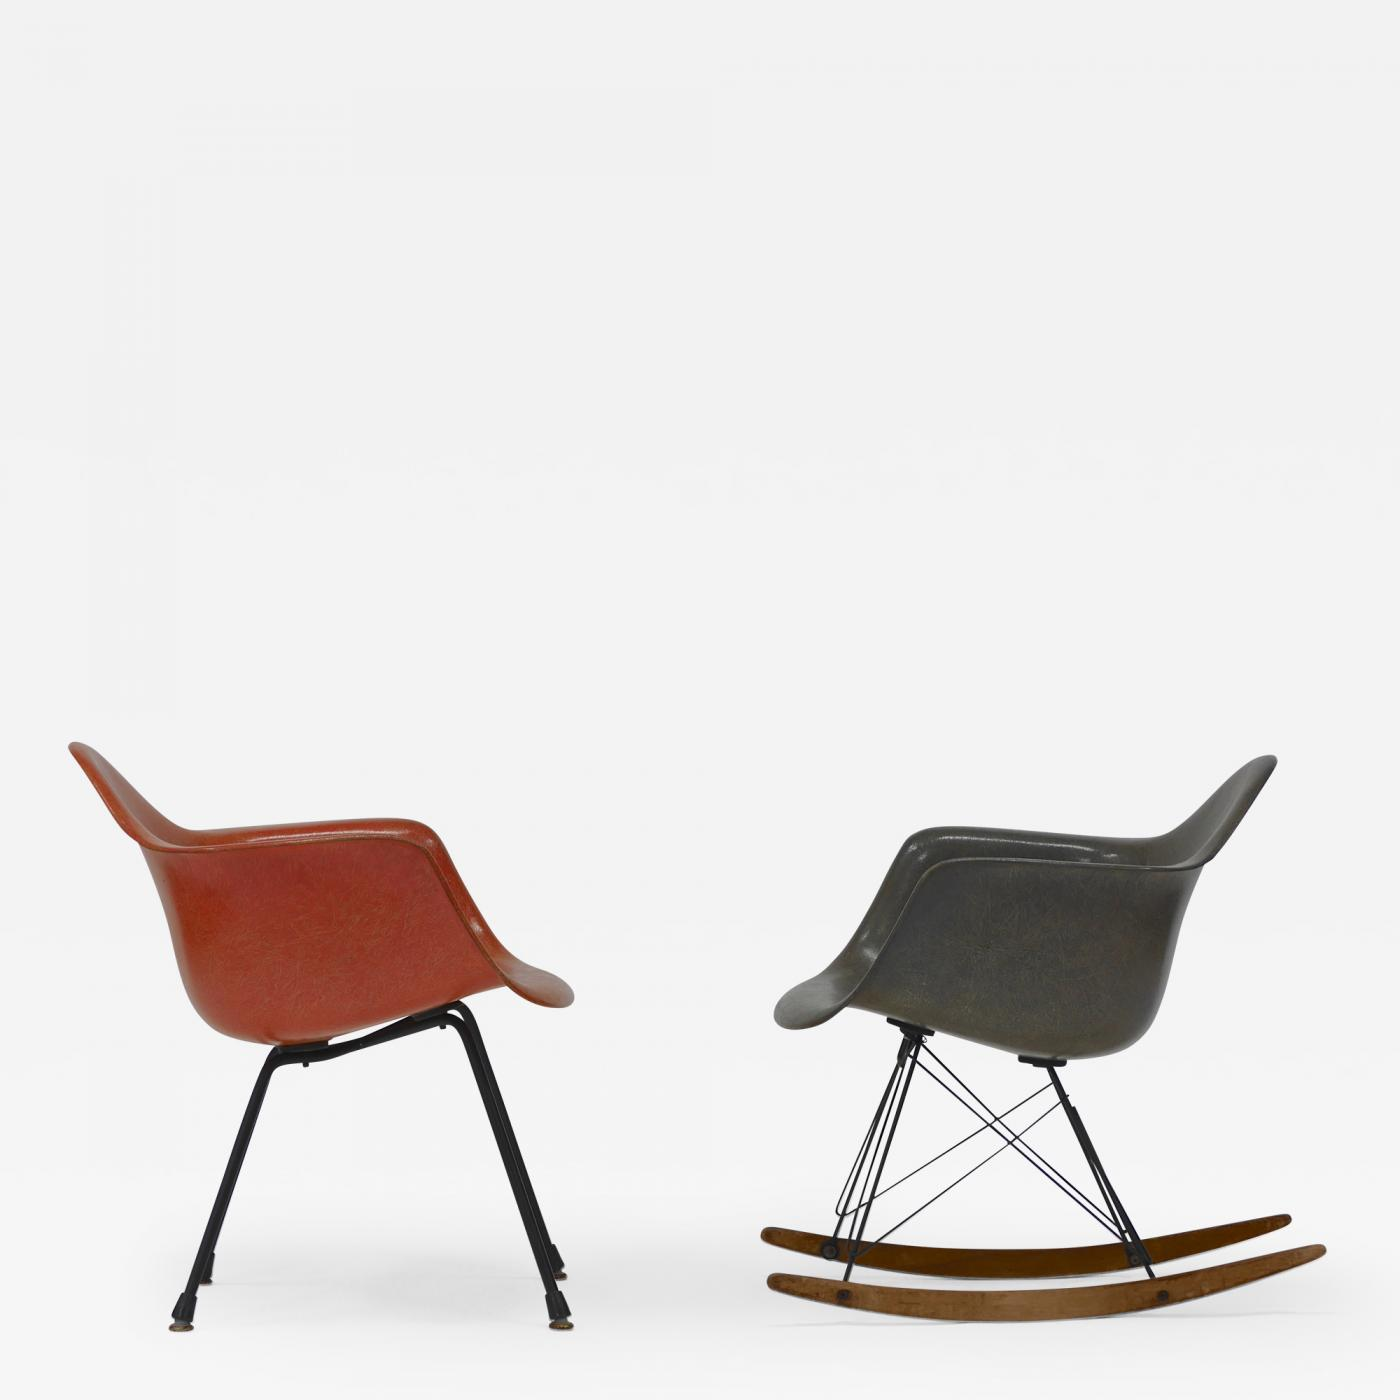 Charles & Ray Eames Iconic Rocker and Lounge Chair by Charles